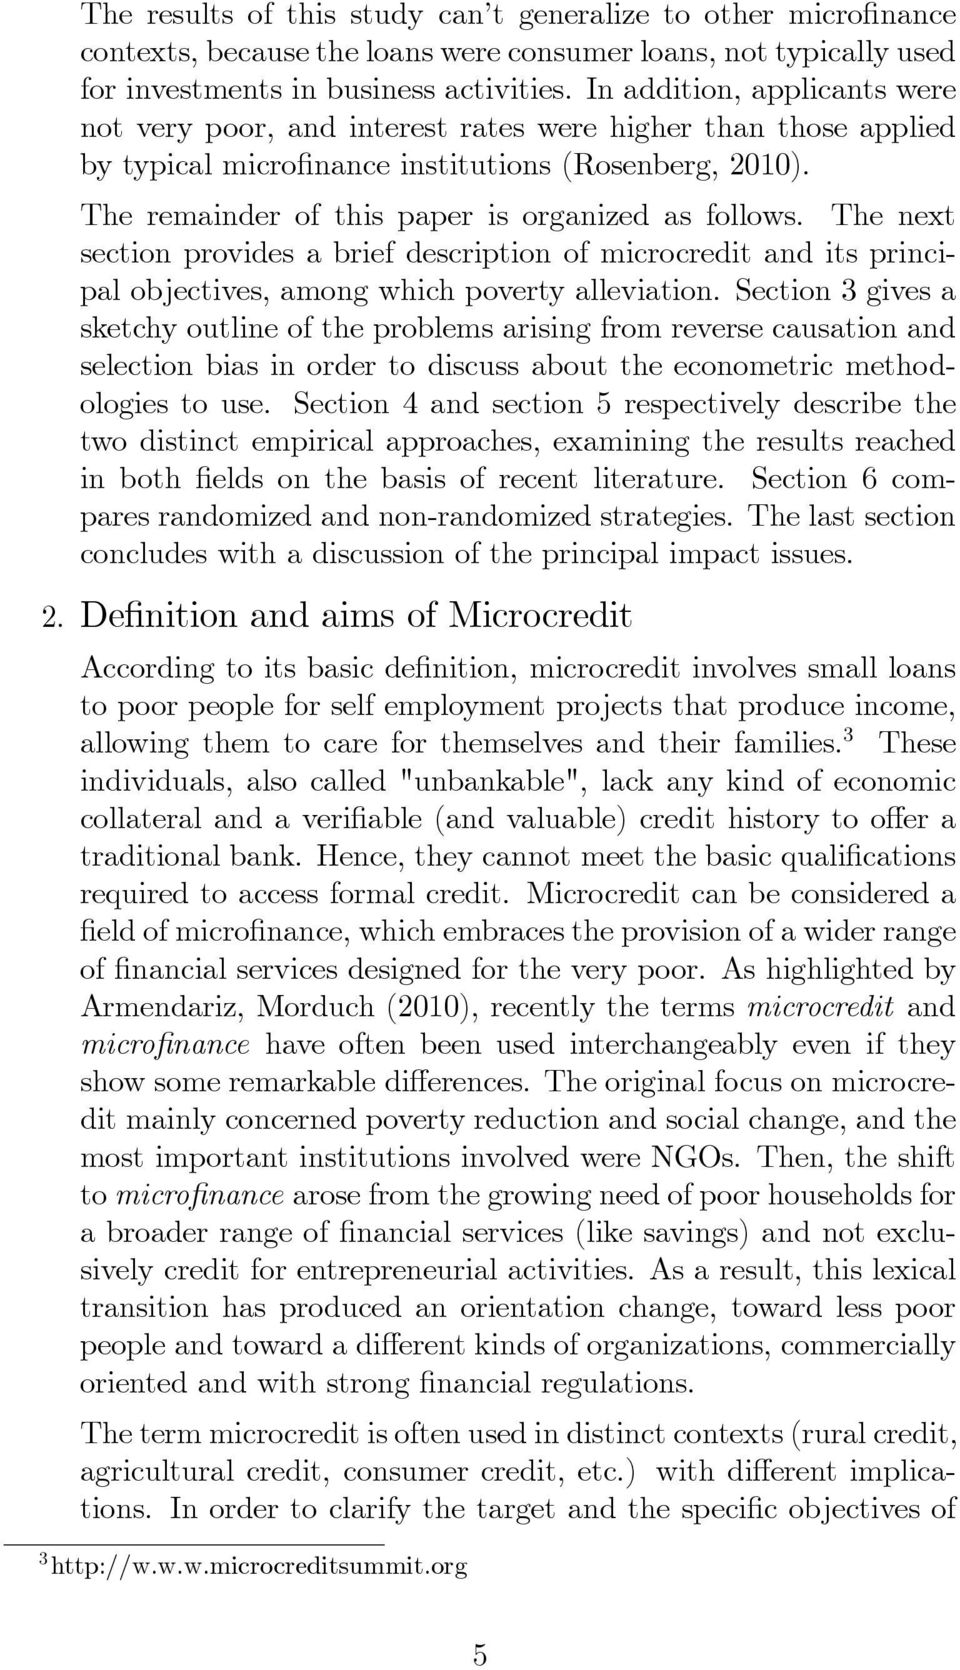 The remainder of this paper is organized as follows. The next section provides a brief description of microcredit and its principal objectives, among which poverty alleviation.